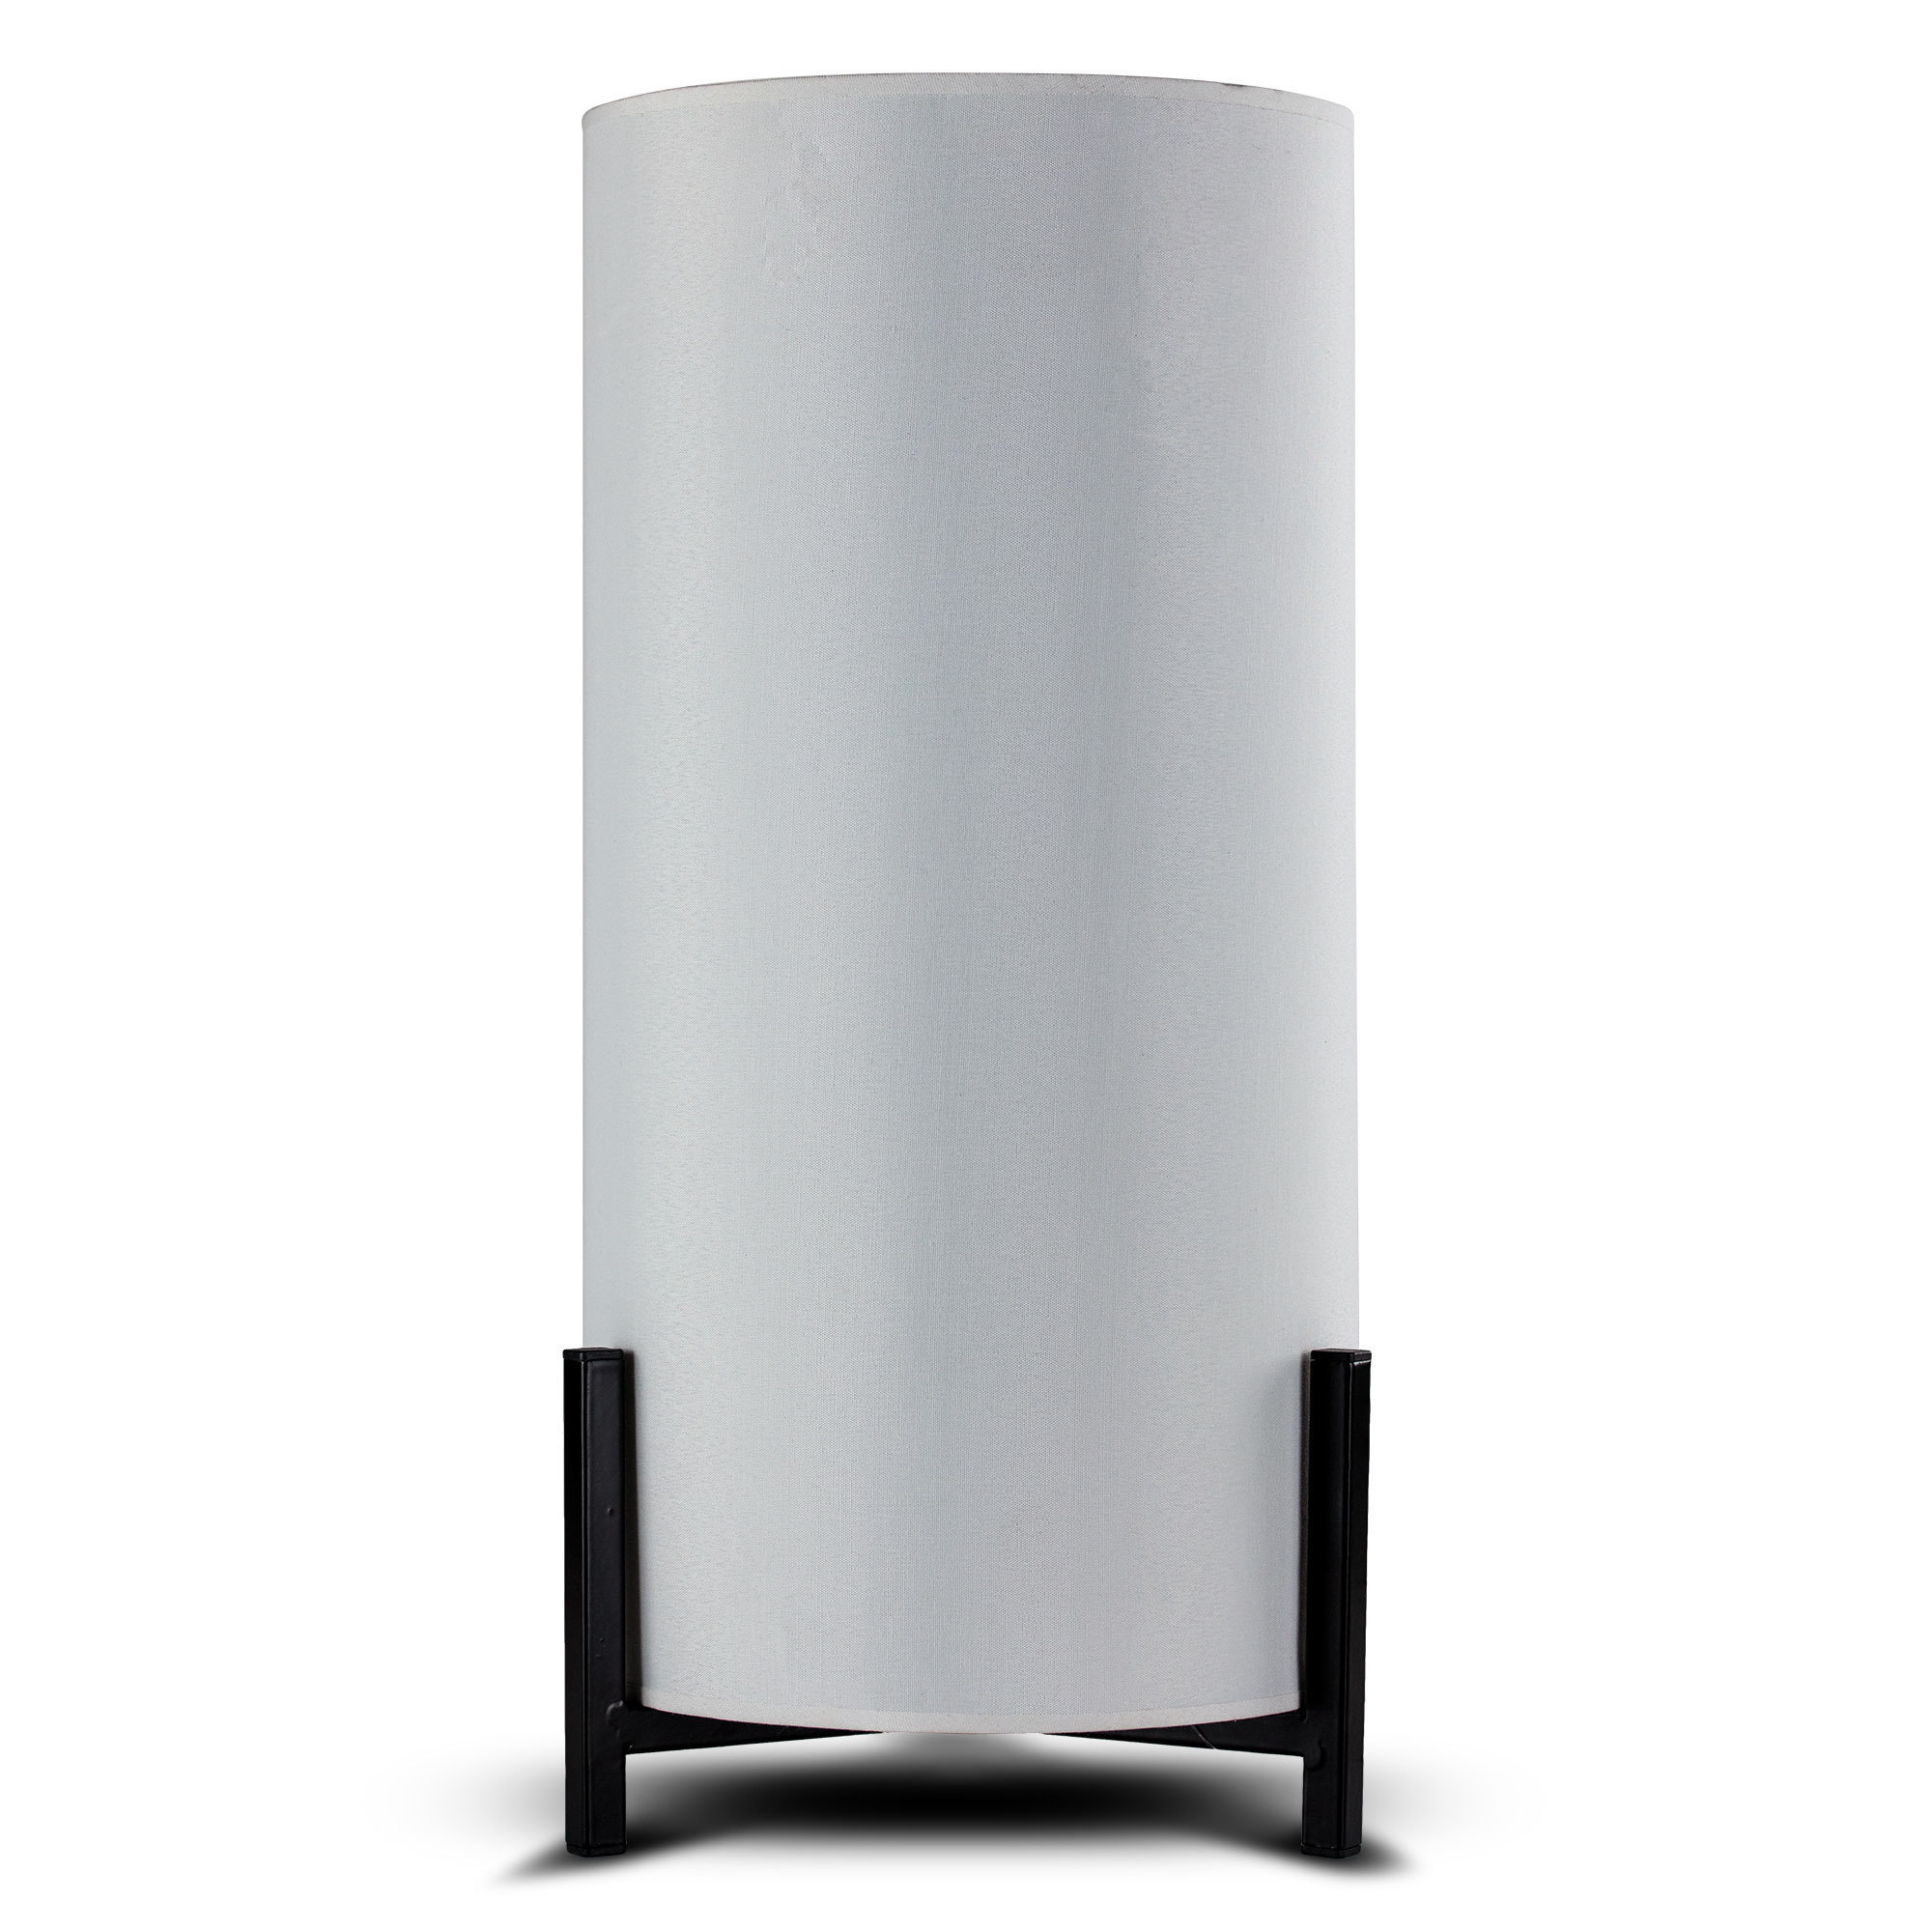 modern stylish white canvas accent table lamp free lamps shipping today pier one area rugs balcony furniture blue mosaic garden bar storage fruit cocktail dining room decor ideas